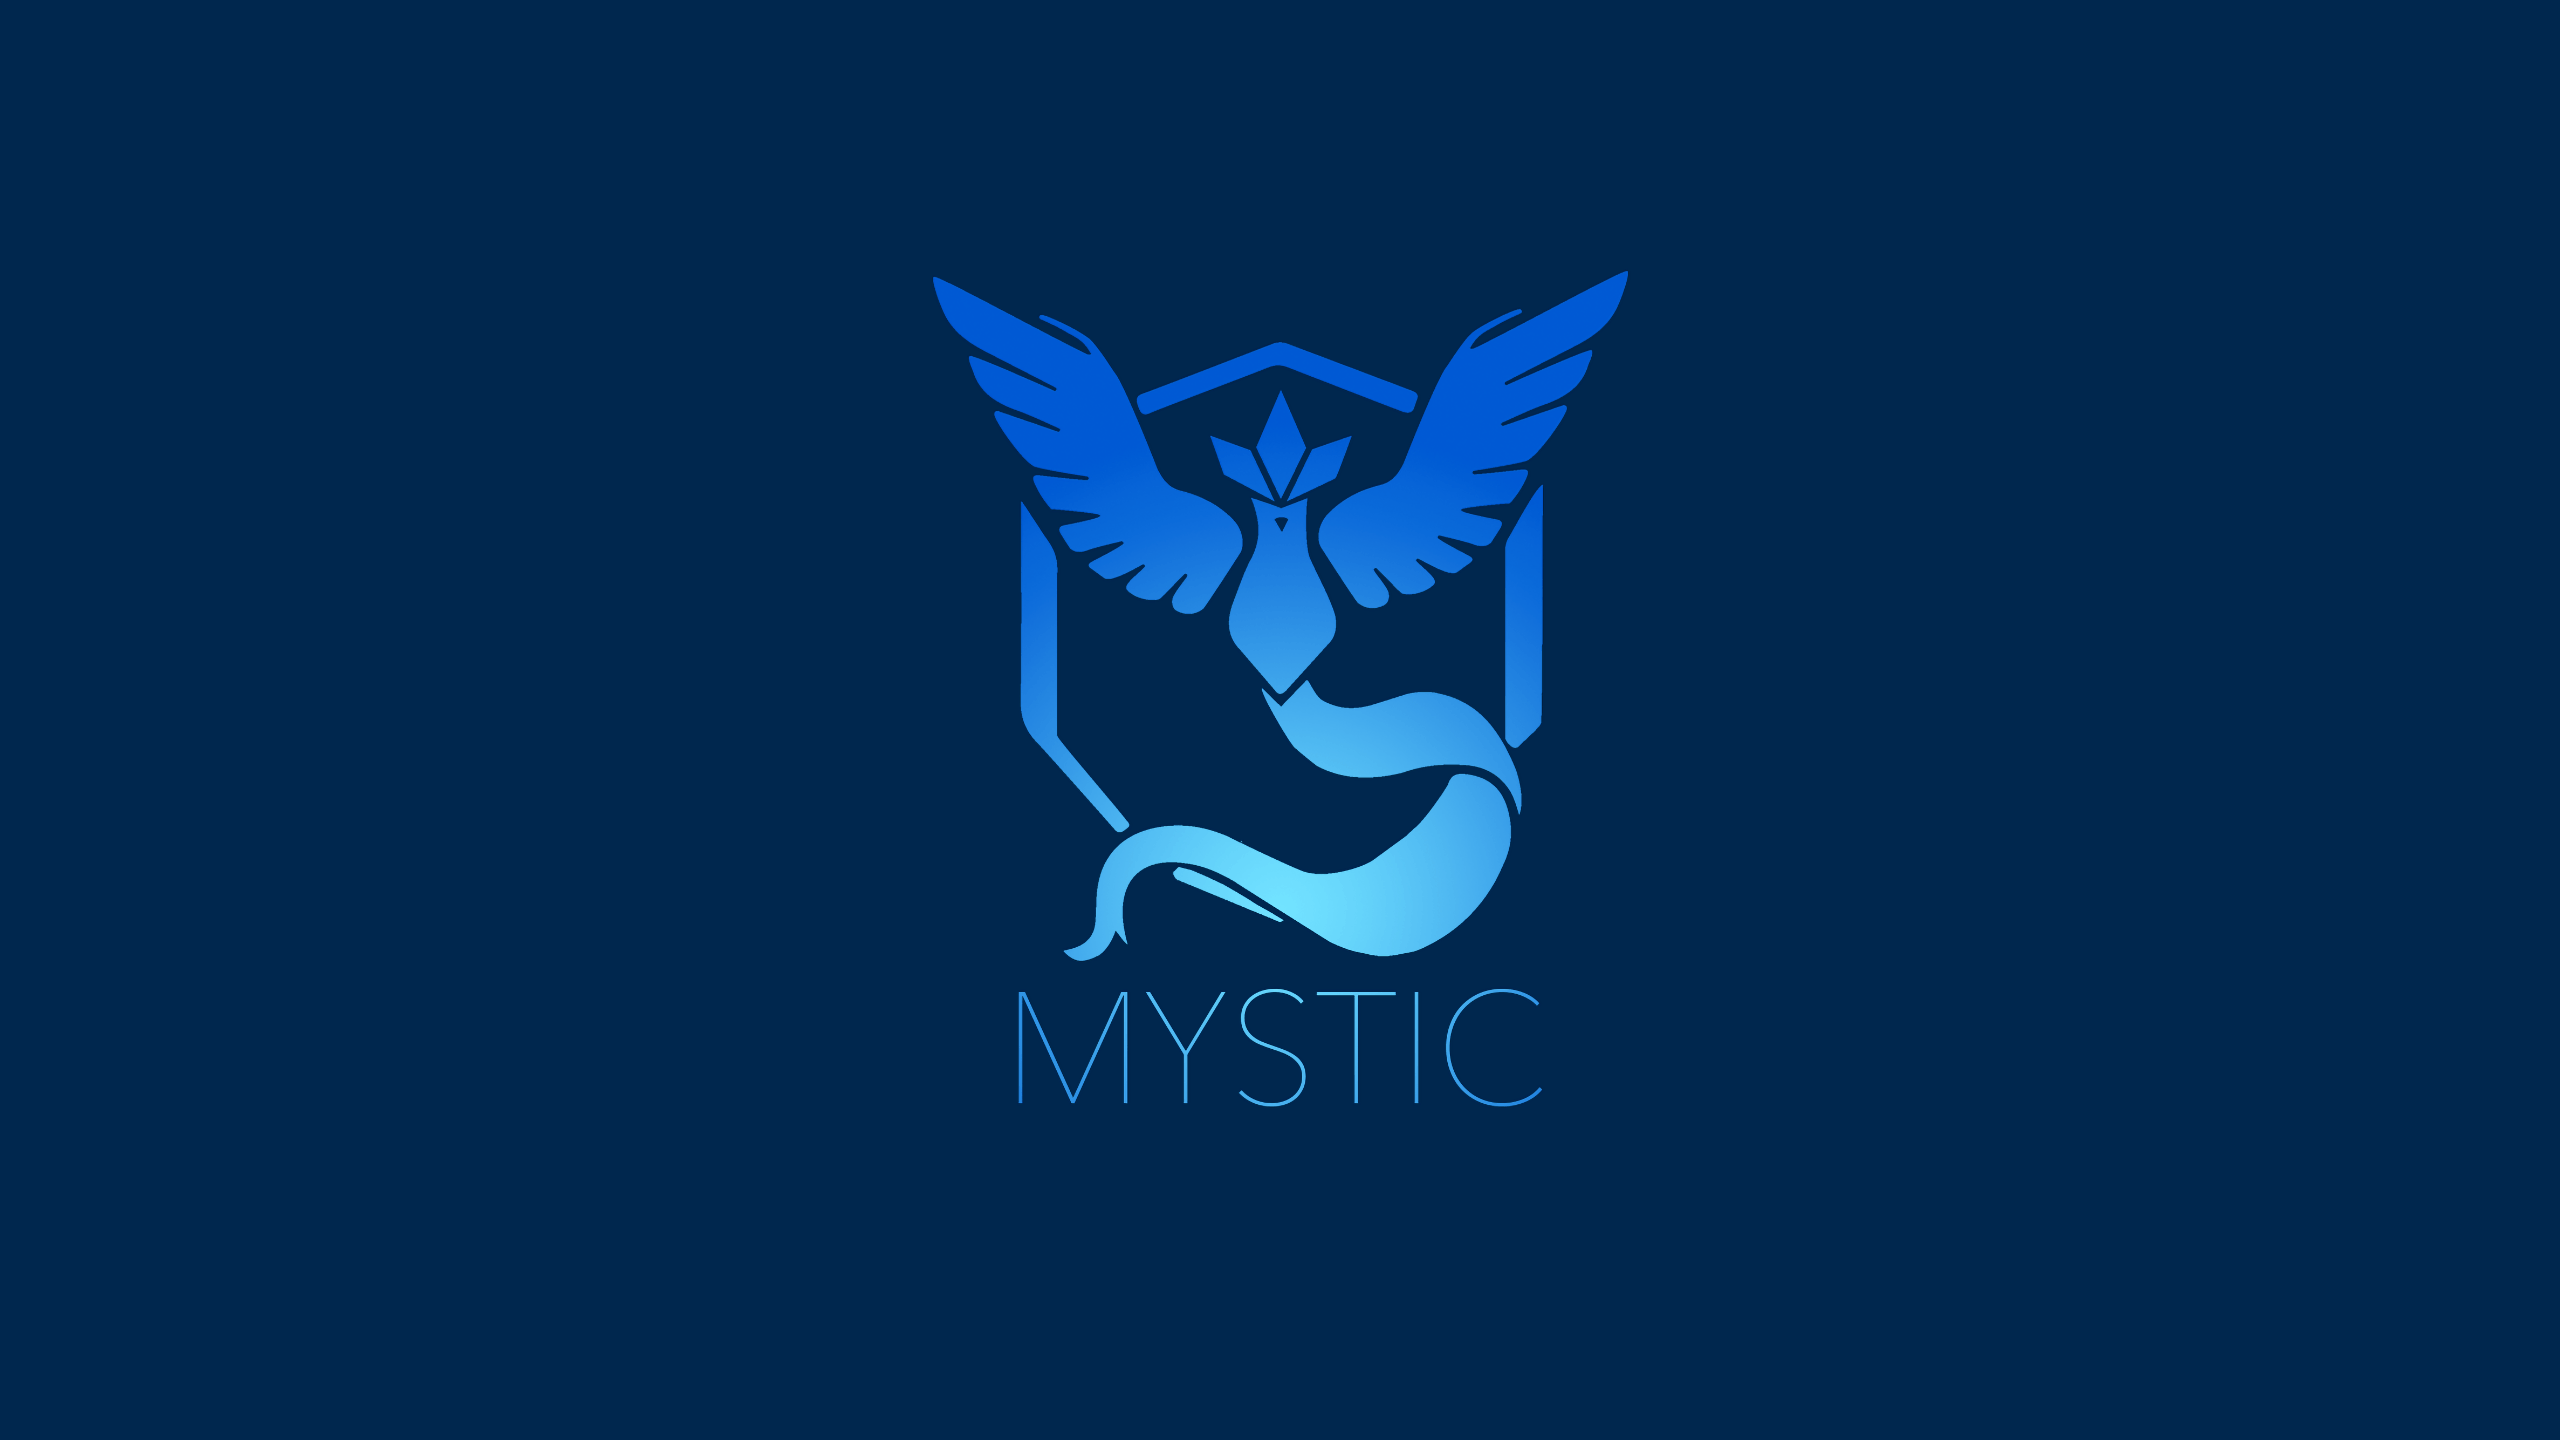 Team Mystic Full HD Wallpapers and Backgrounds Image